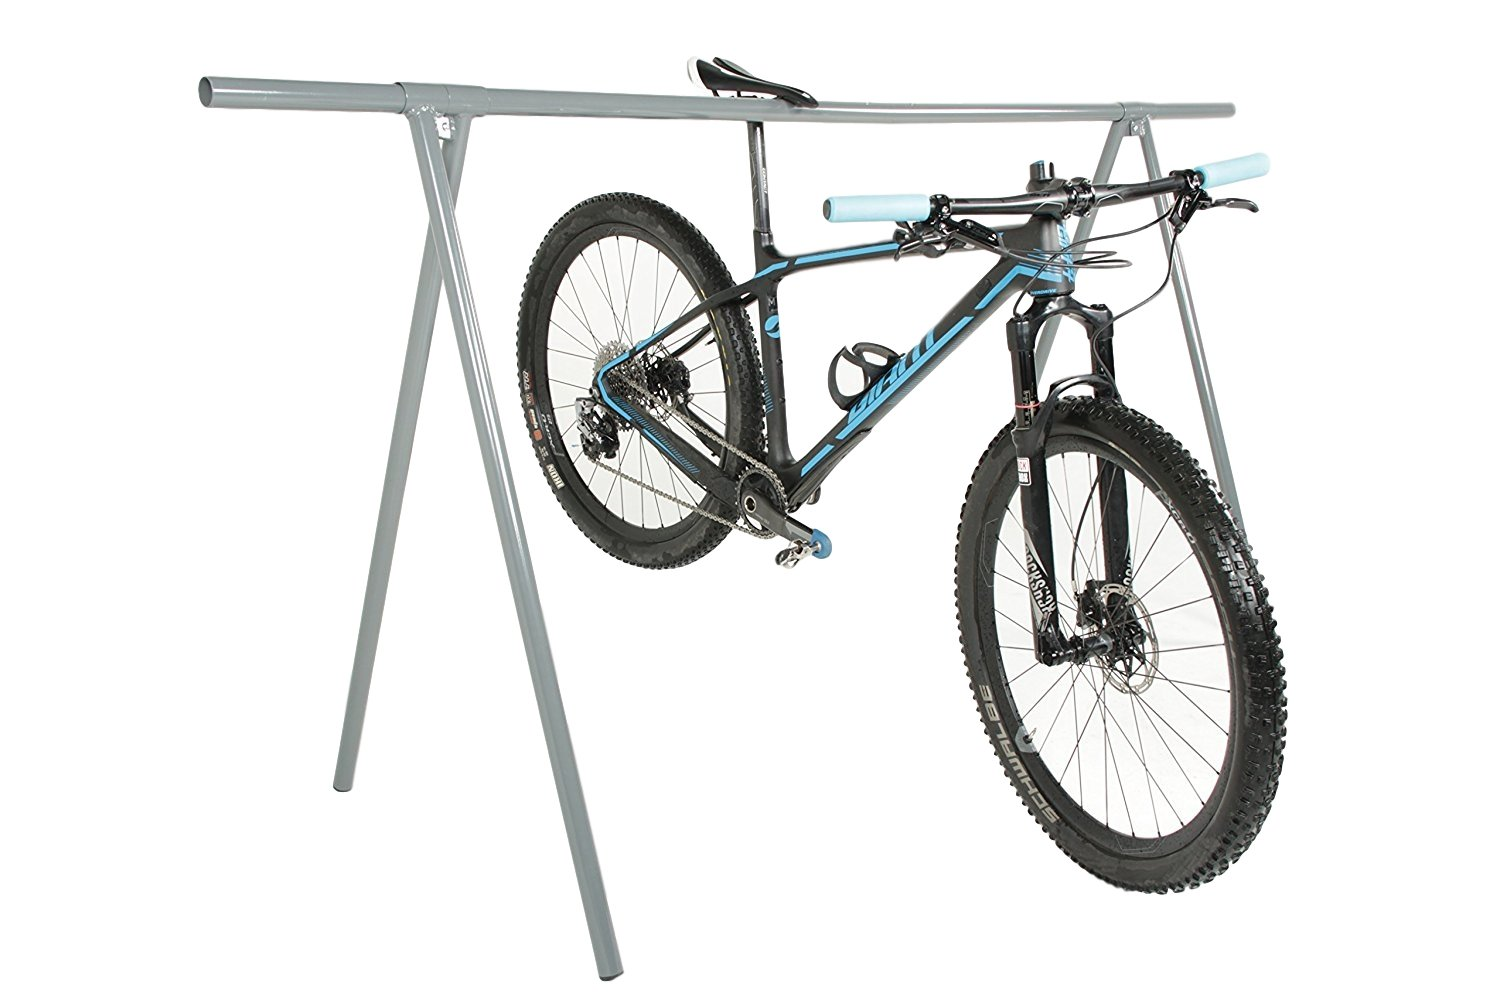 Amazon.com : Stationary Outdoor Indoor Bike Rack For Parking Or Home Storage,  Holds Up To 10 Bicycles, Simple Rail Design For Easy Setup And Assembly ...